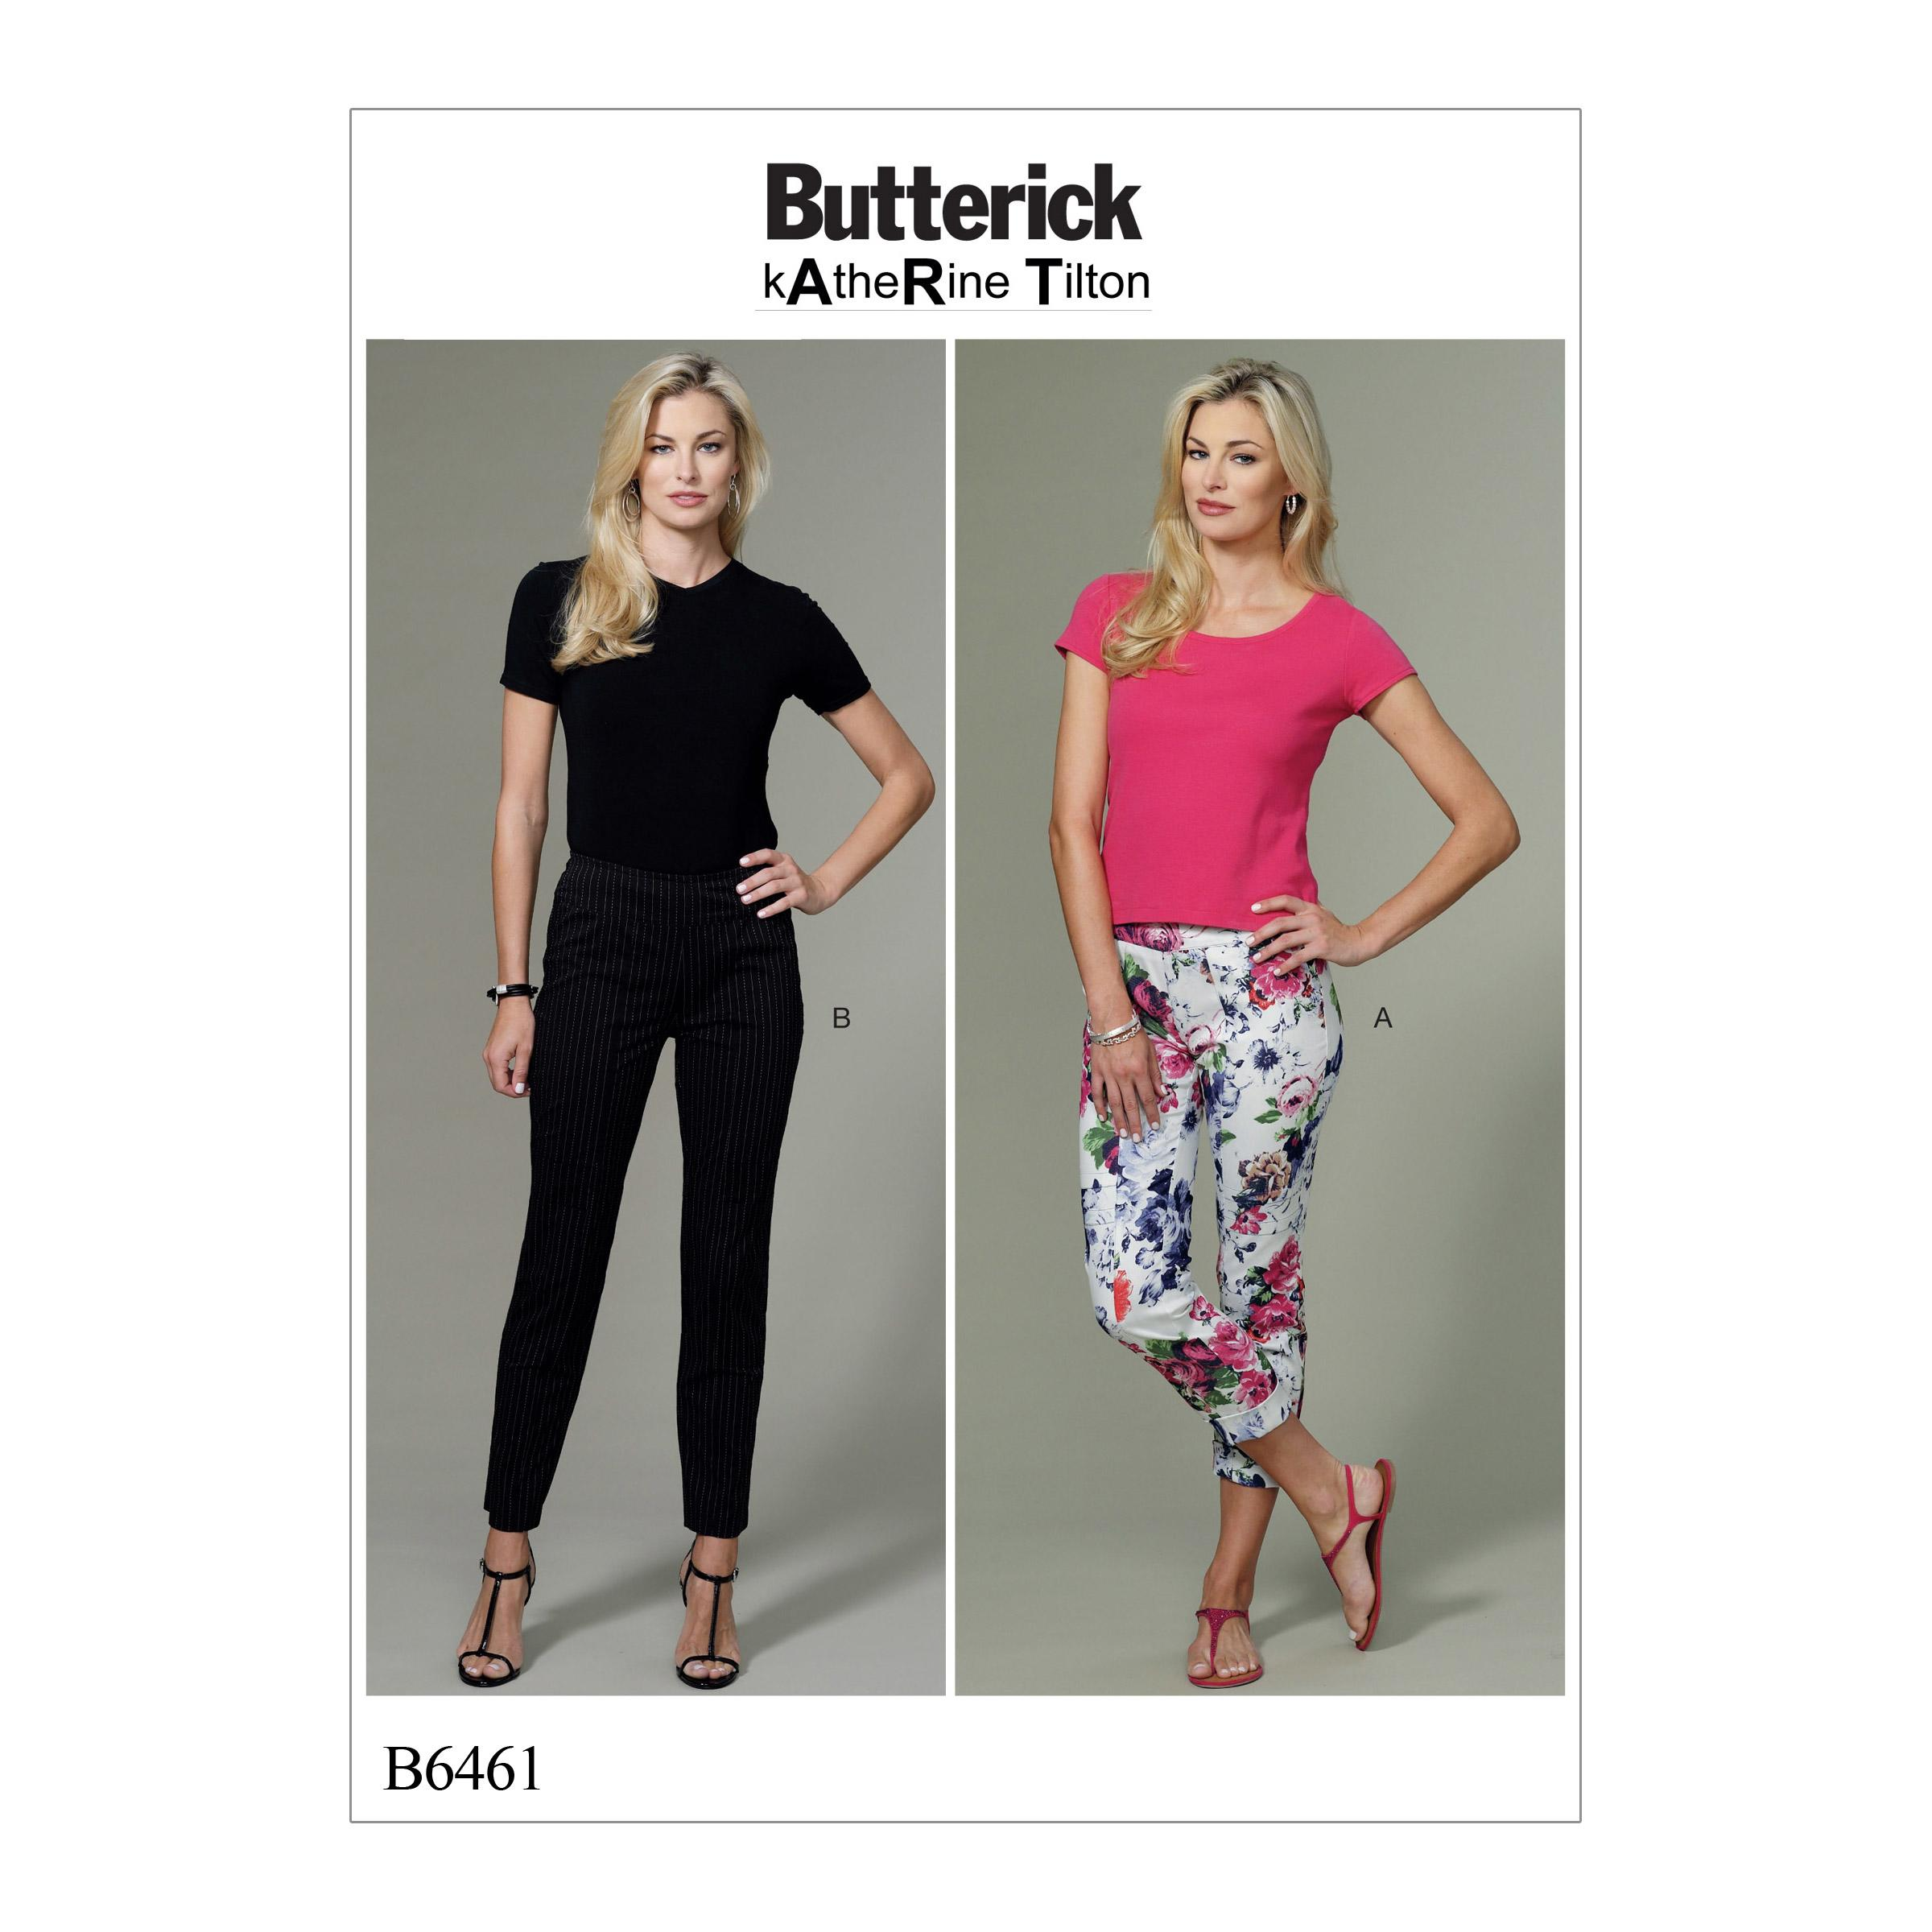 Butterick B6461 Misses' Seam-Detail Pants